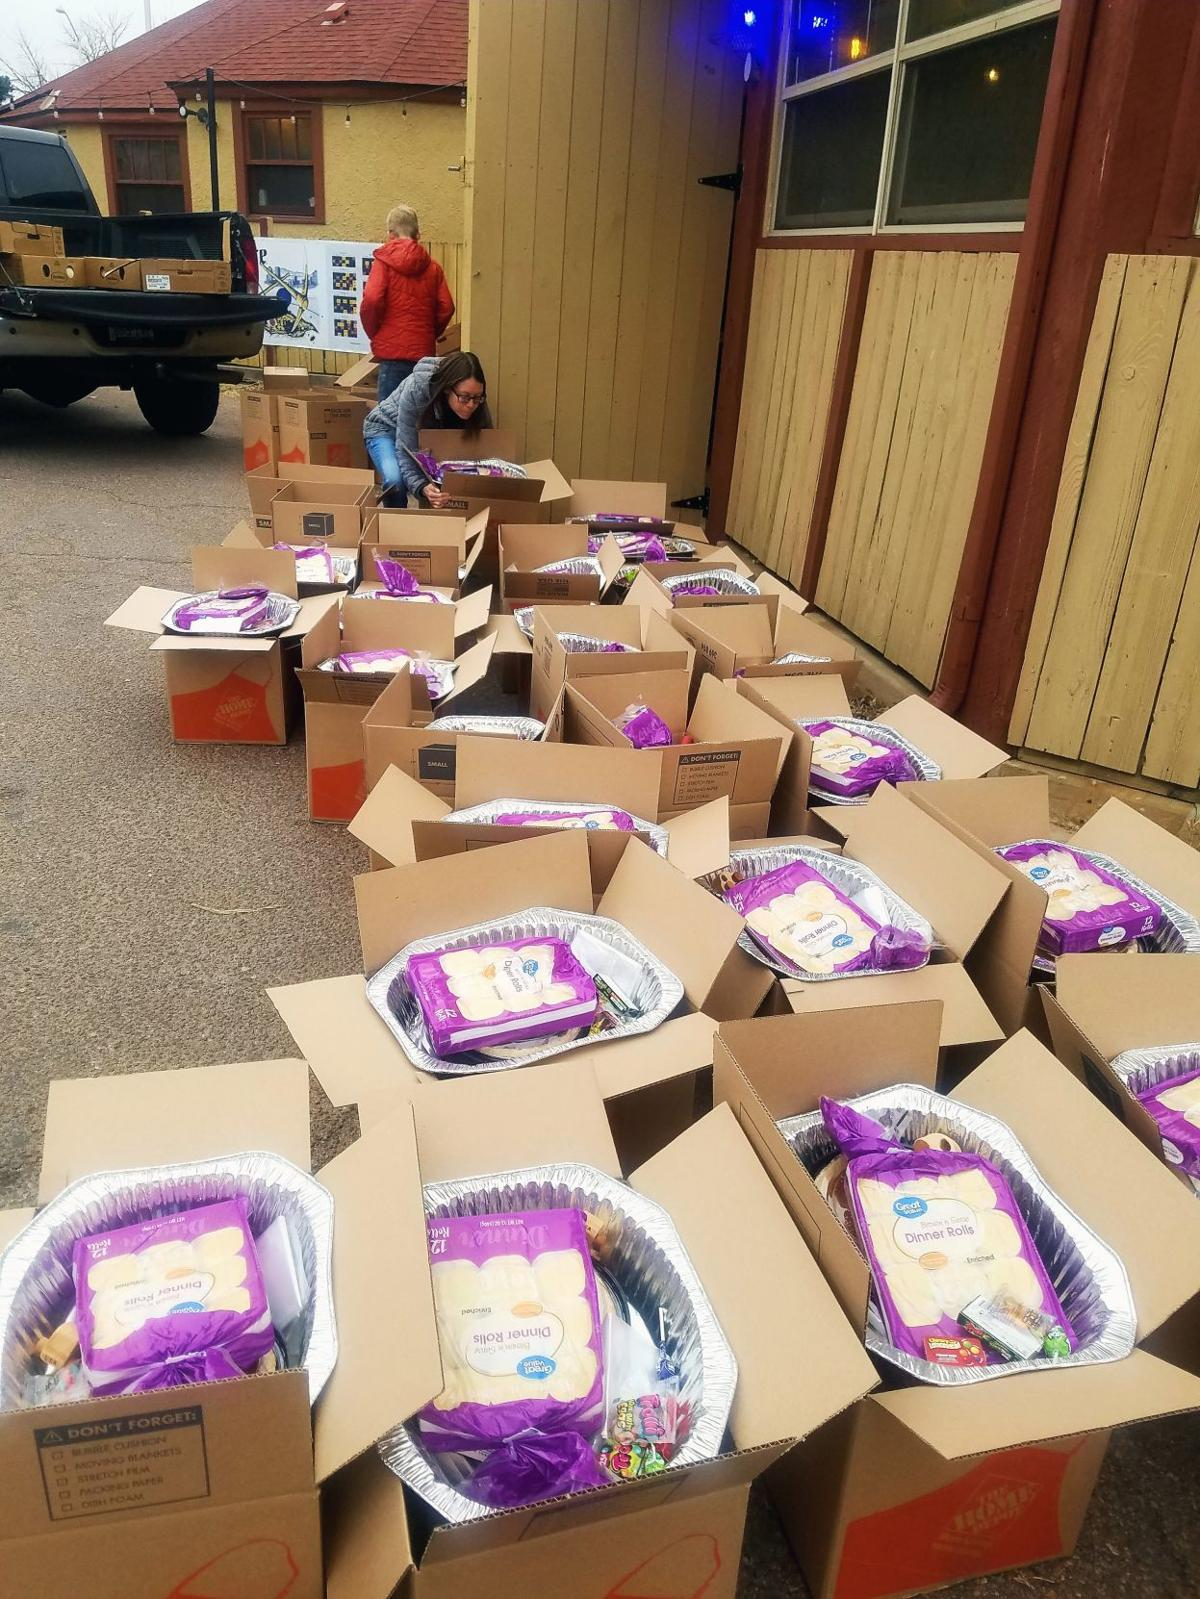 More than 5 dozen area families treated to full Thanksgiving meal thanks to Kiwanis efforts